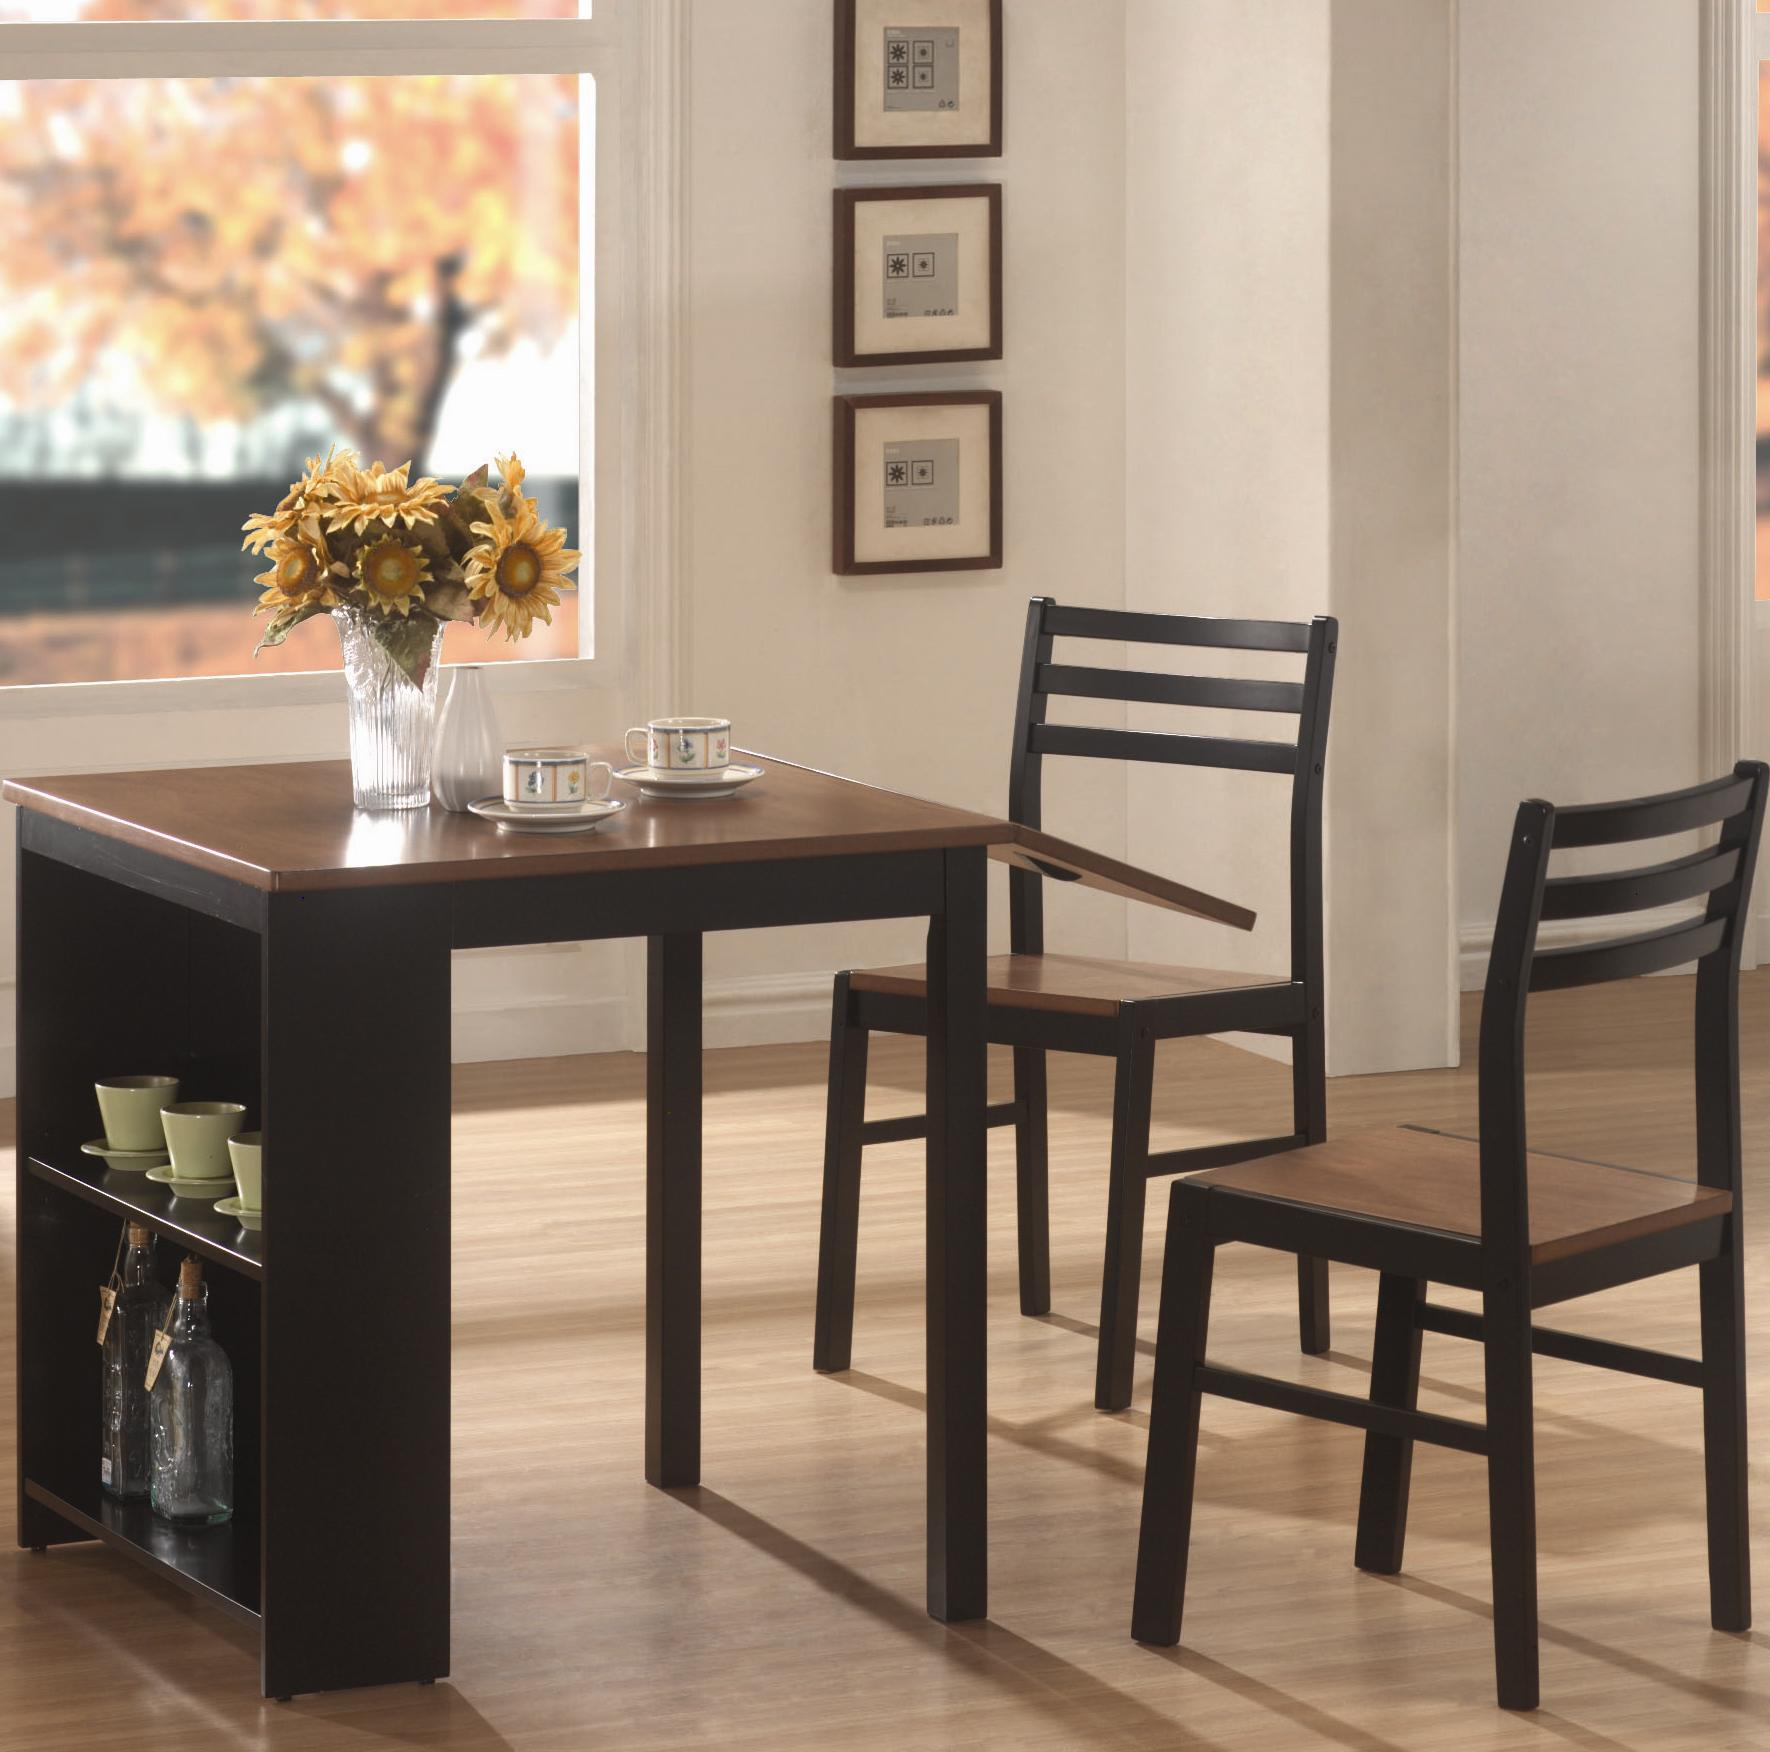 Breakfast Room Tables Persia Breakfast Table W 2 Side Chairs By Coaster At Dunk Bright Furniture